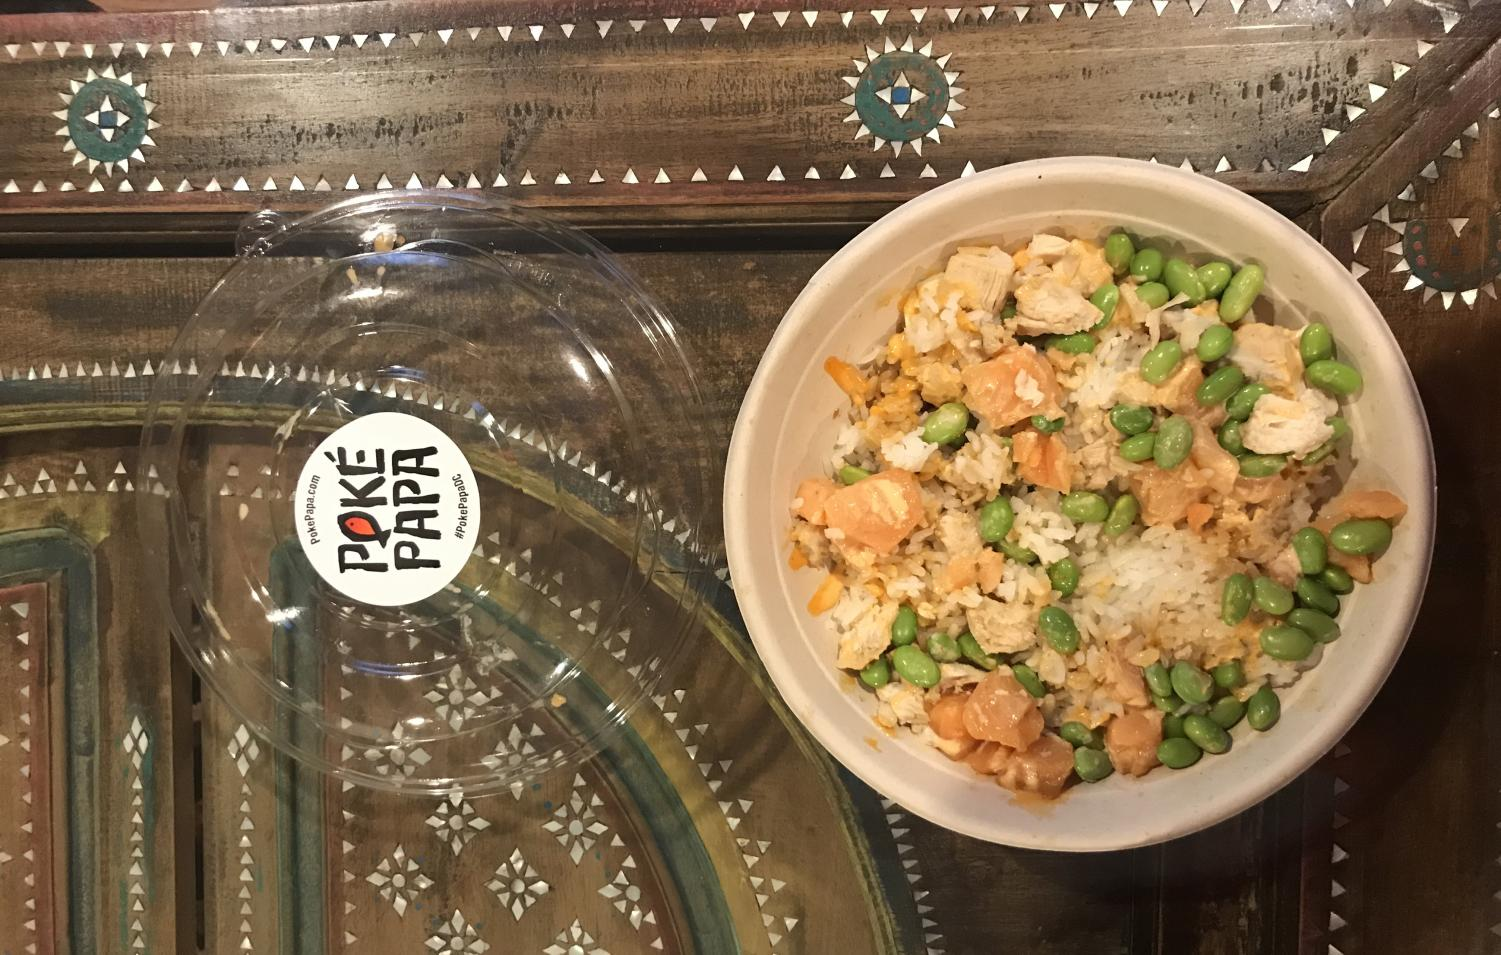 This is an example of an order at Poké Papa, including salmon, diced chicken, white rice, edamame, sweet shoyu sauce, and sriracha sauce.